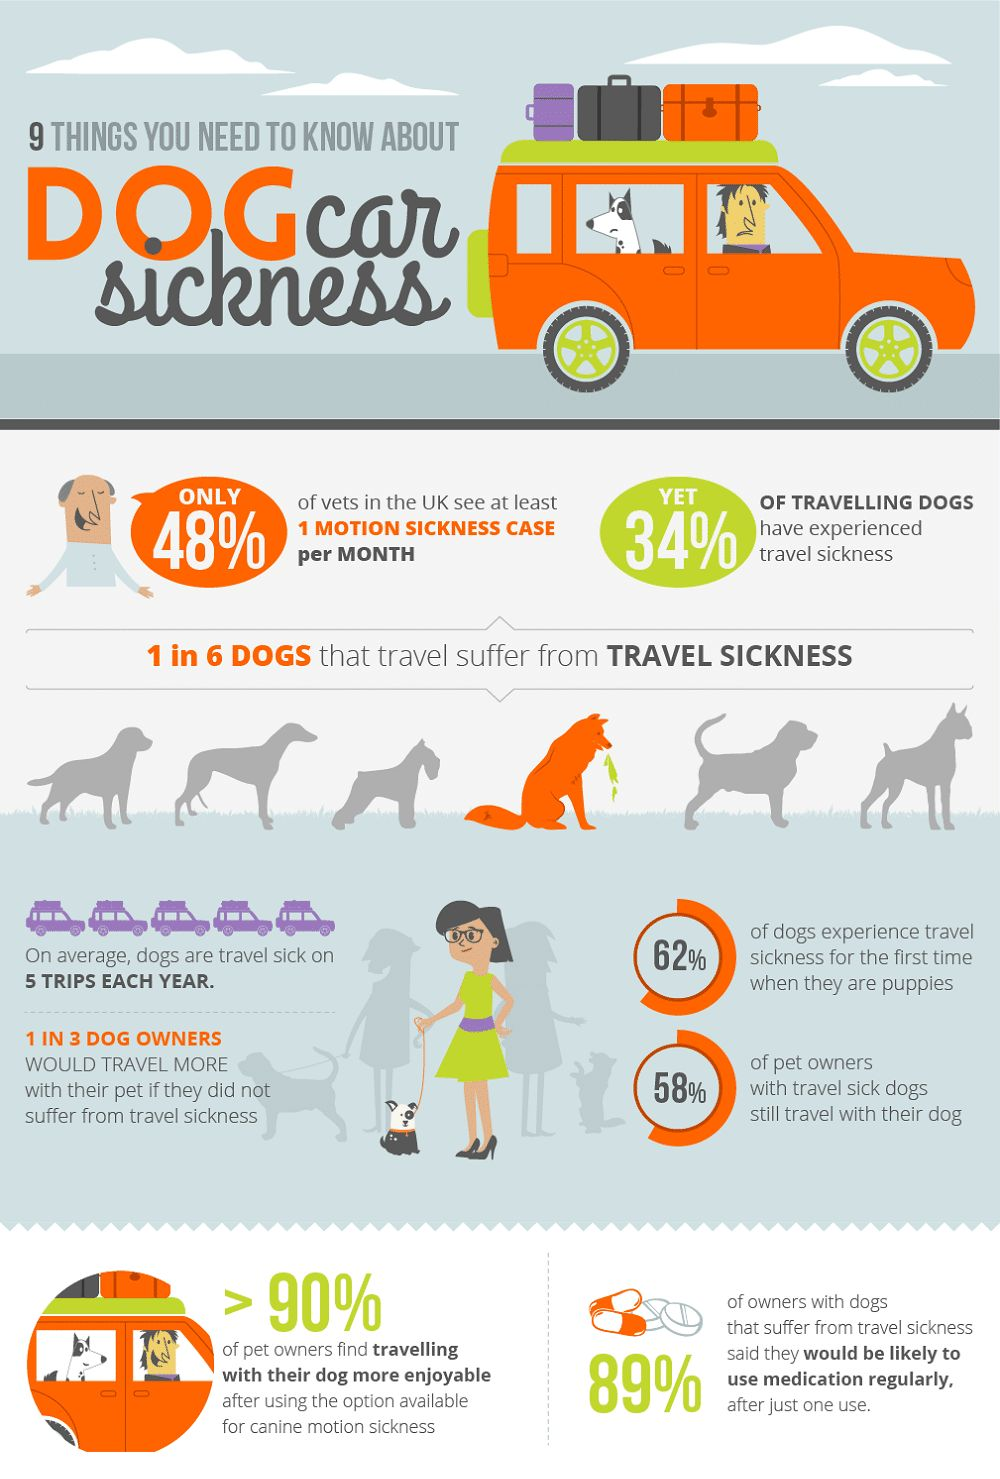 Dog car sickness: symptoms and prevention methods for your pooch